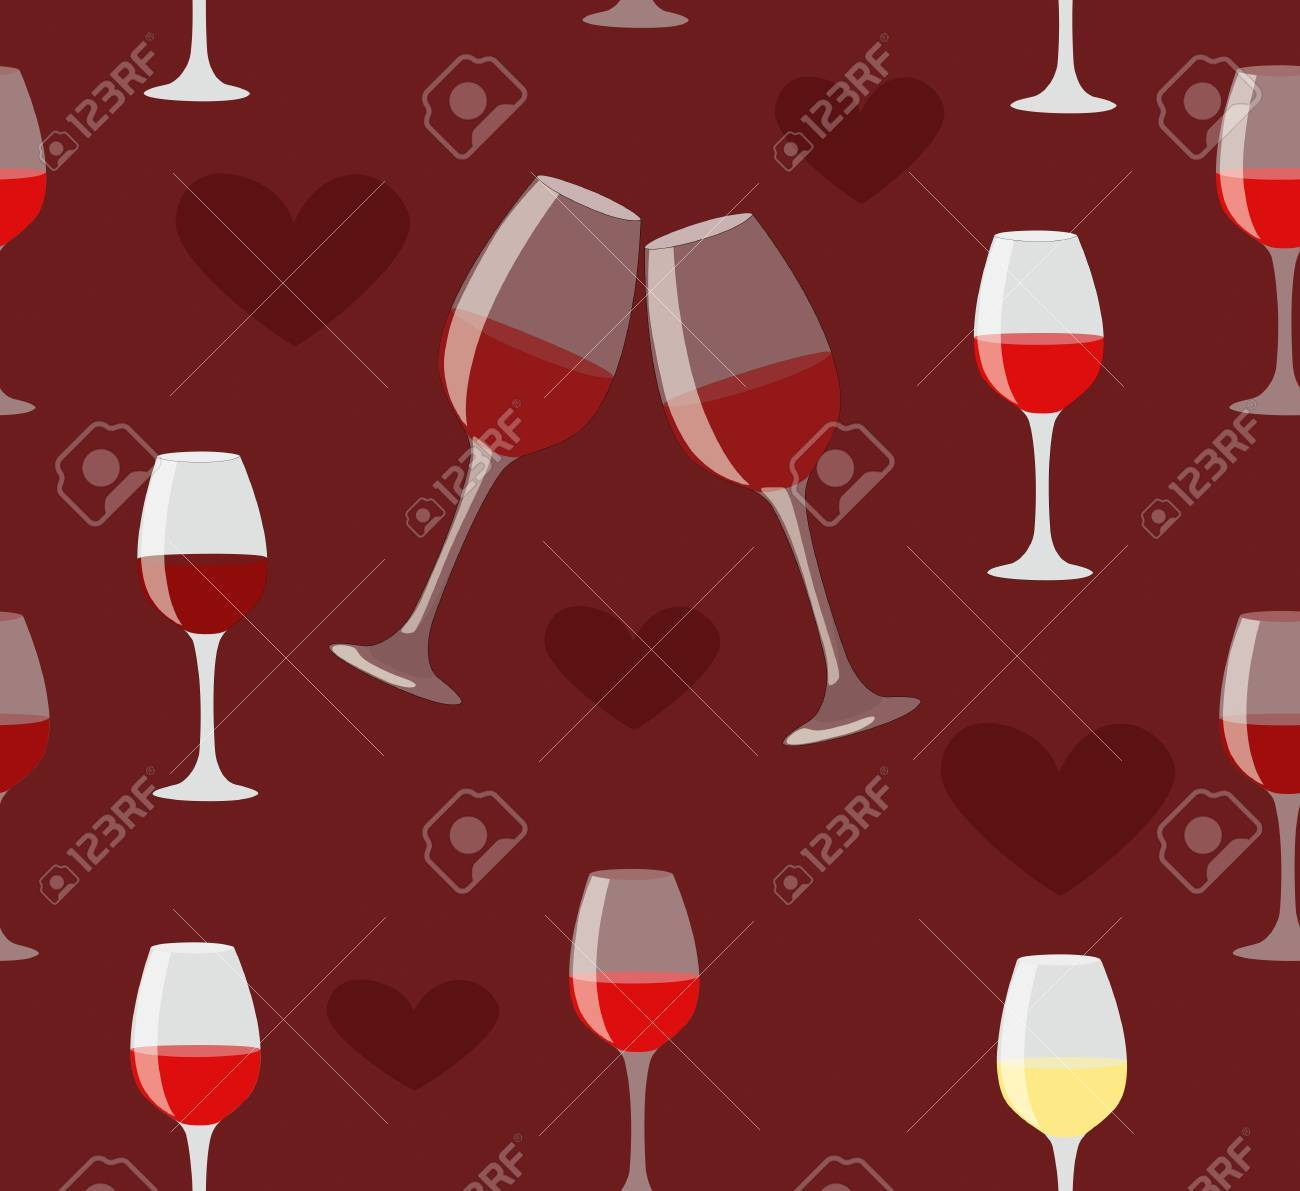 Glass of wine and heart seamless illustration on love dark red background Stock Vector - 14553757